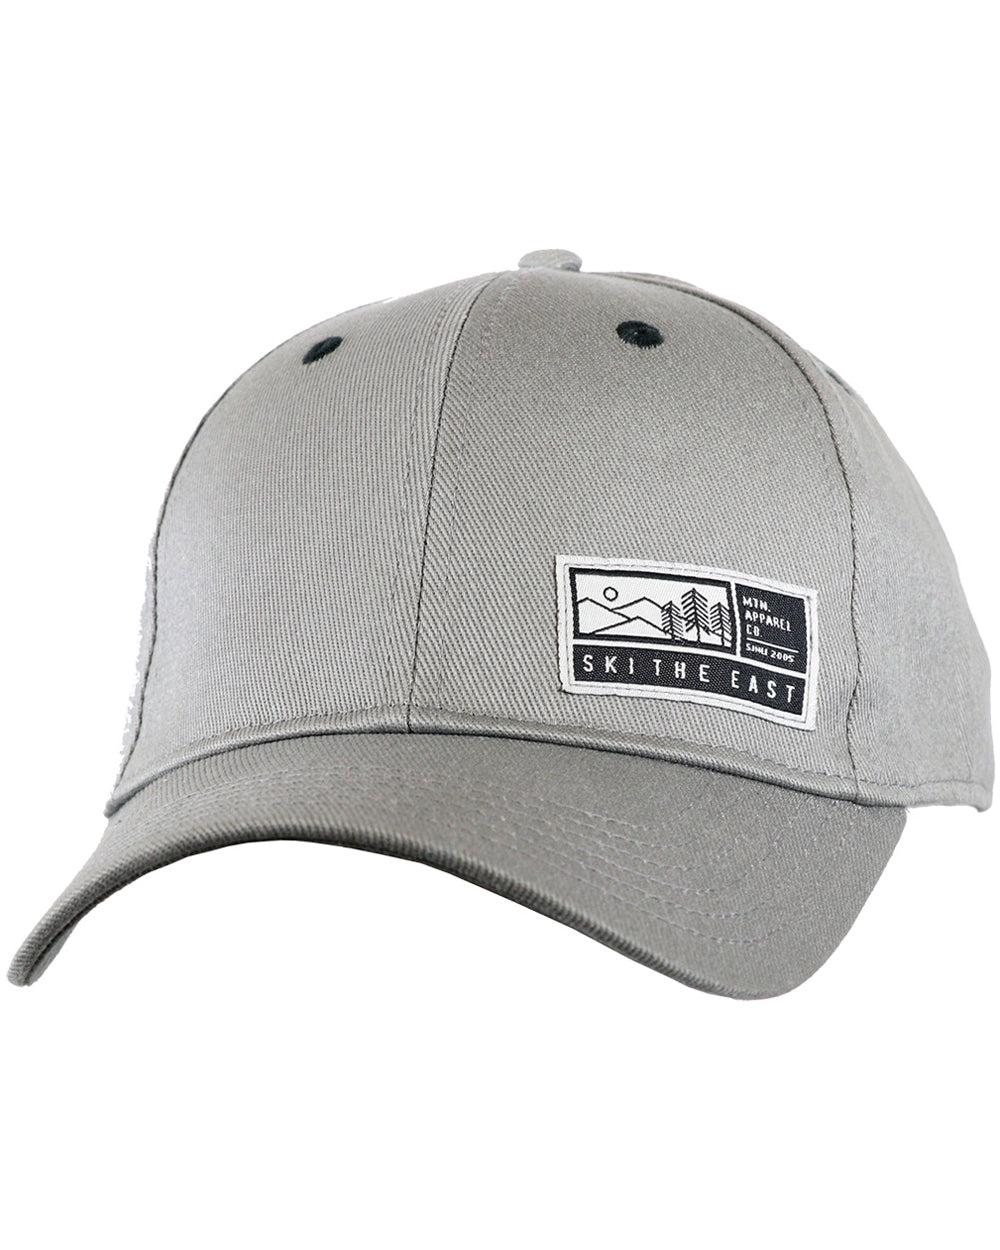 d67afa06a9f Alpenglow Stretch Fit Hat - Gray - Ski The East